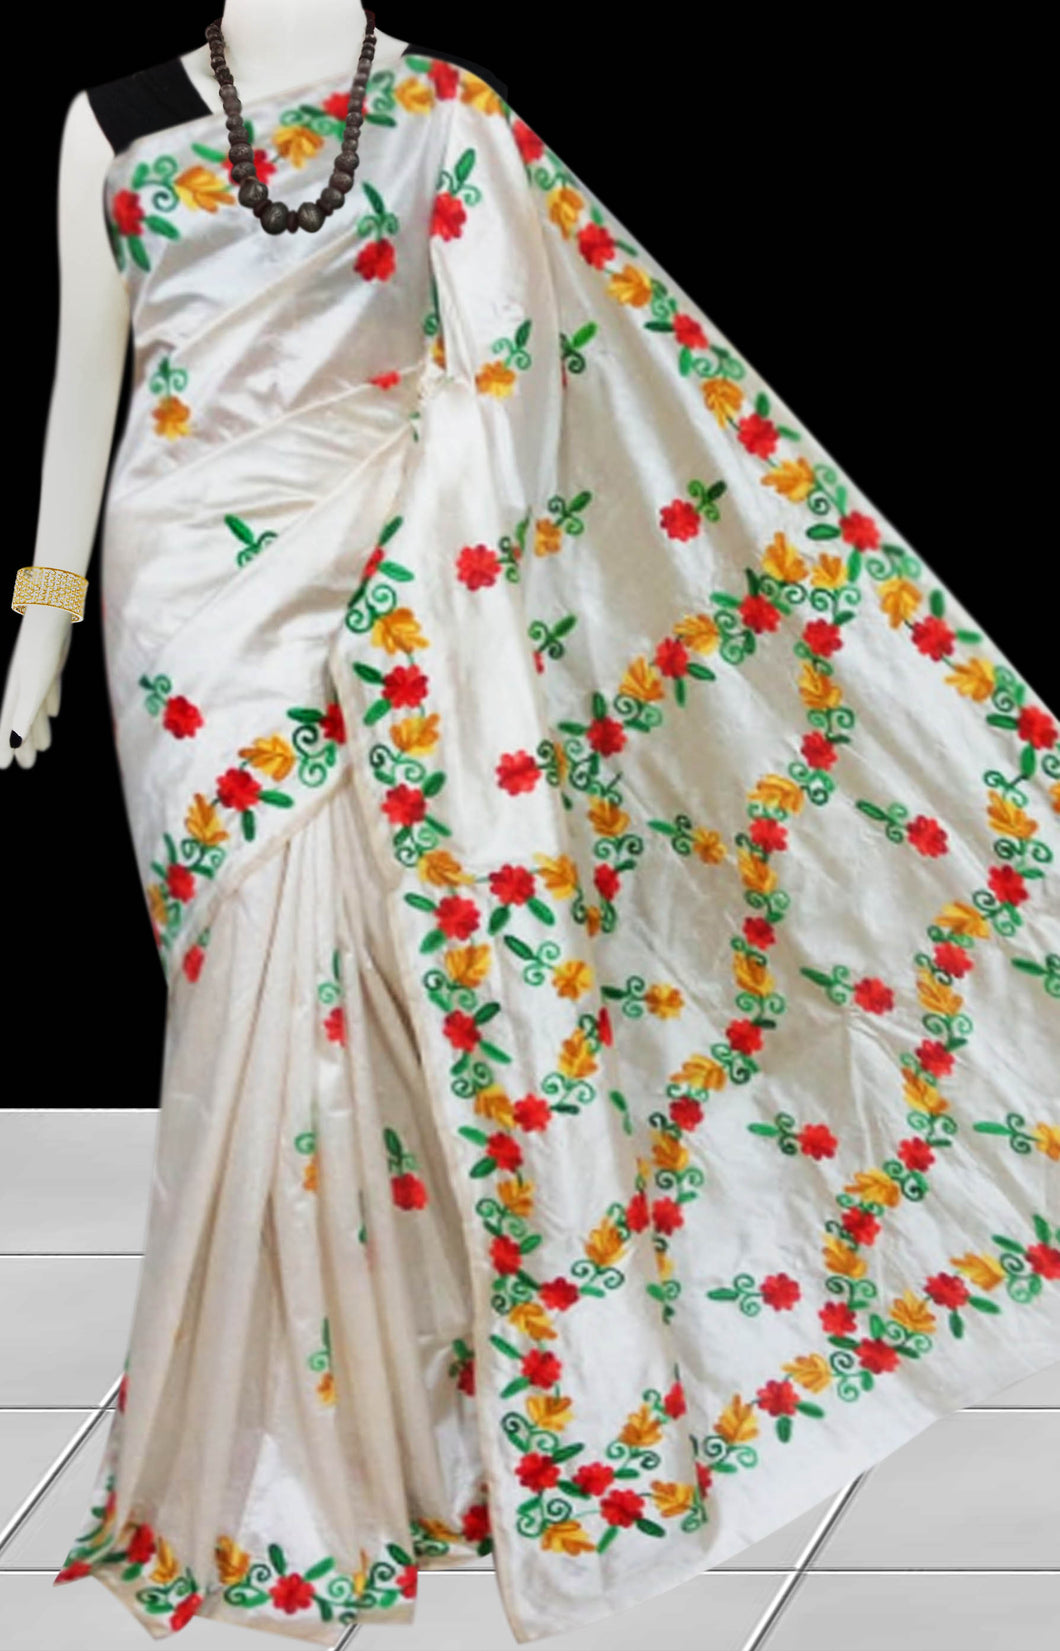 Cream Color Malai silk saree decorated with red, yellow & green color Hand embroidery